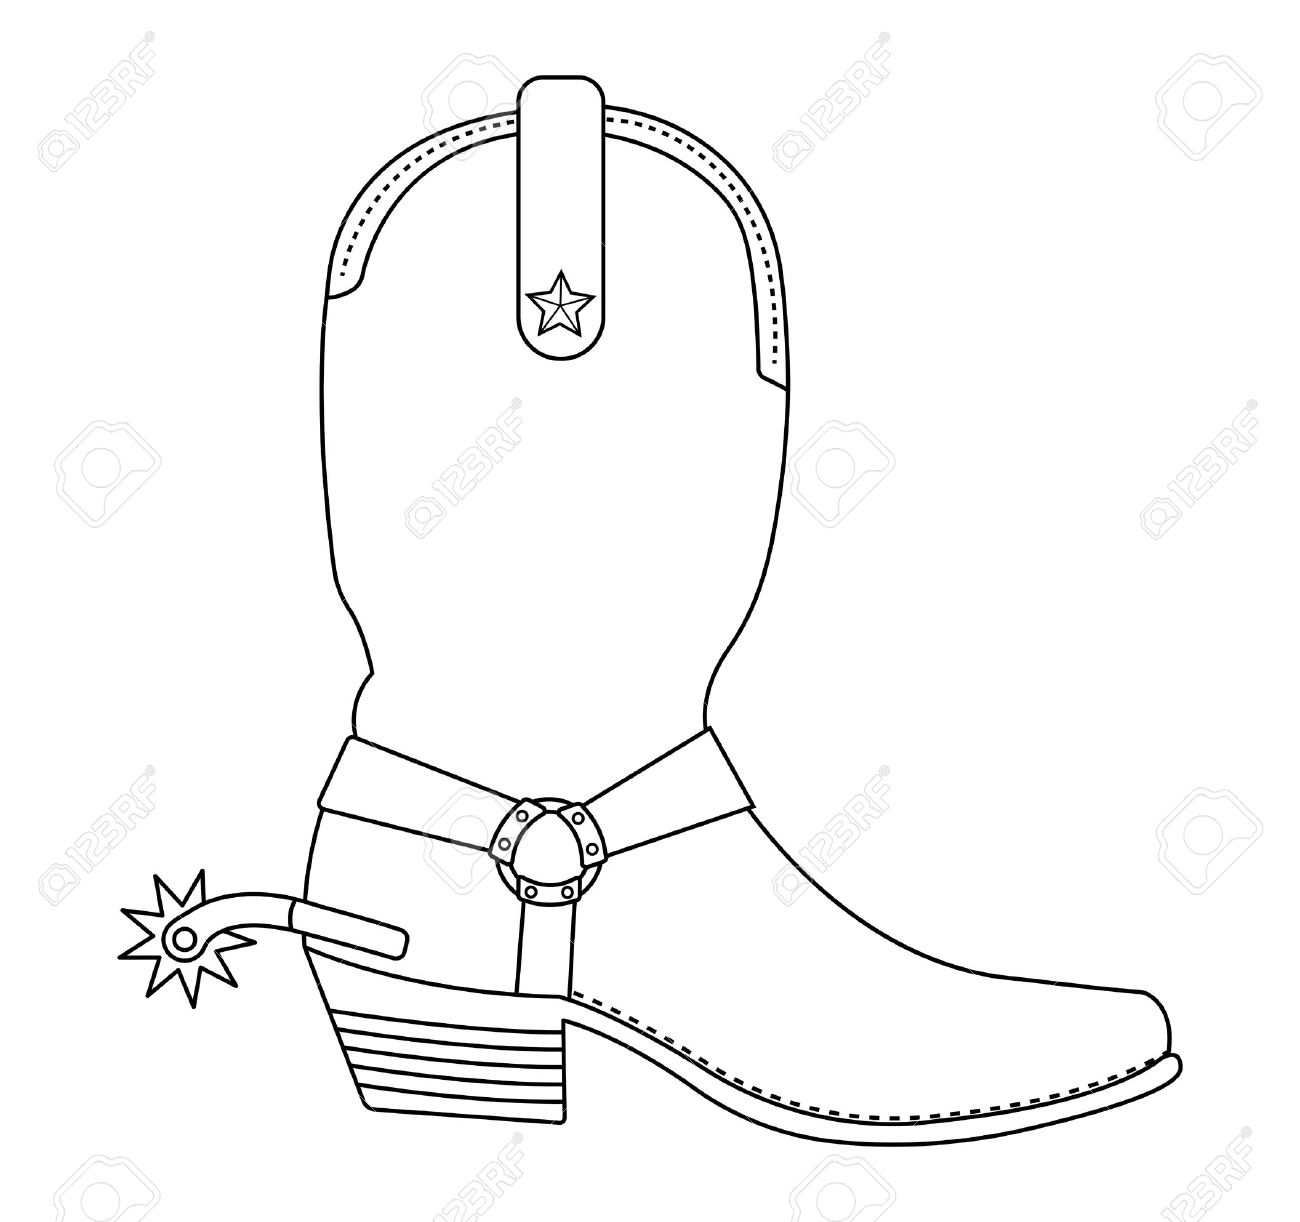 Wild West Cowboy Boot With Spur And Star. Contour Lines Vector.